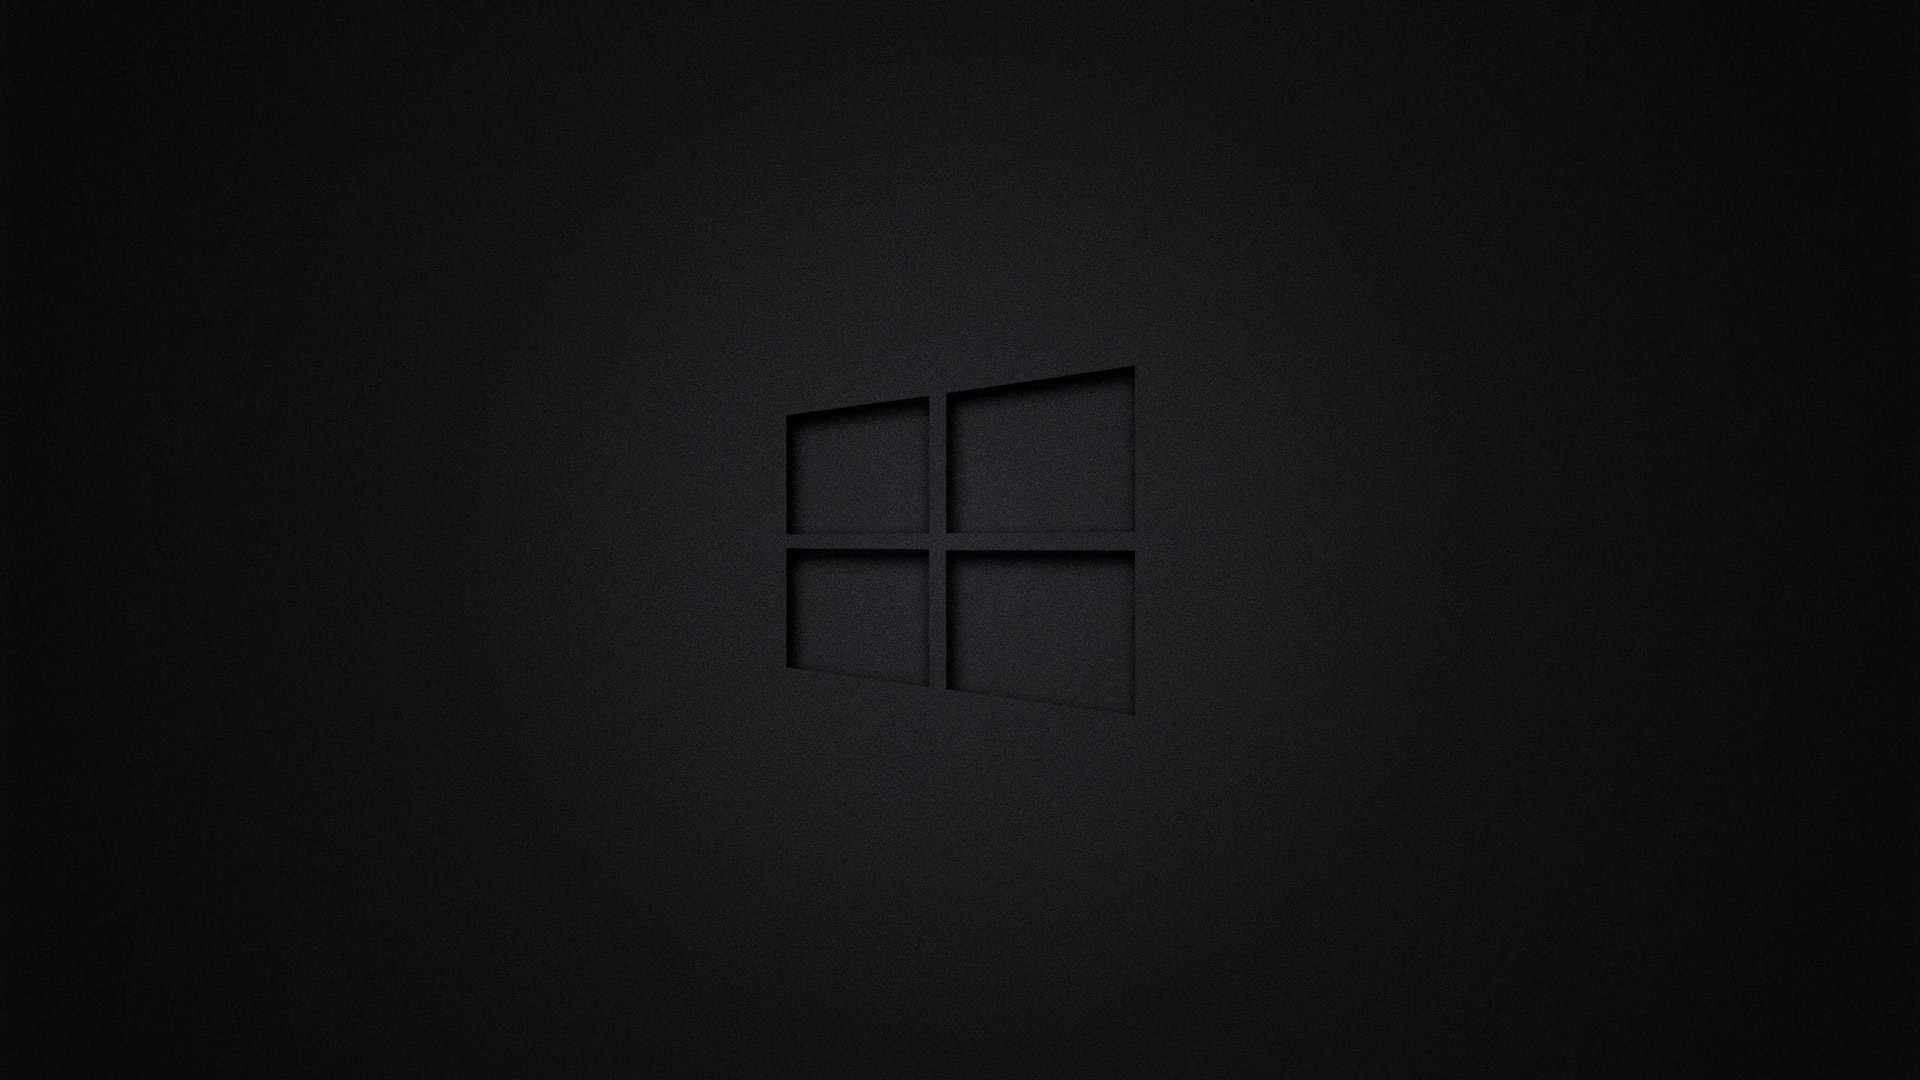 windows 10 dark, hd computer, 4k wallpapers, images, backgrounds